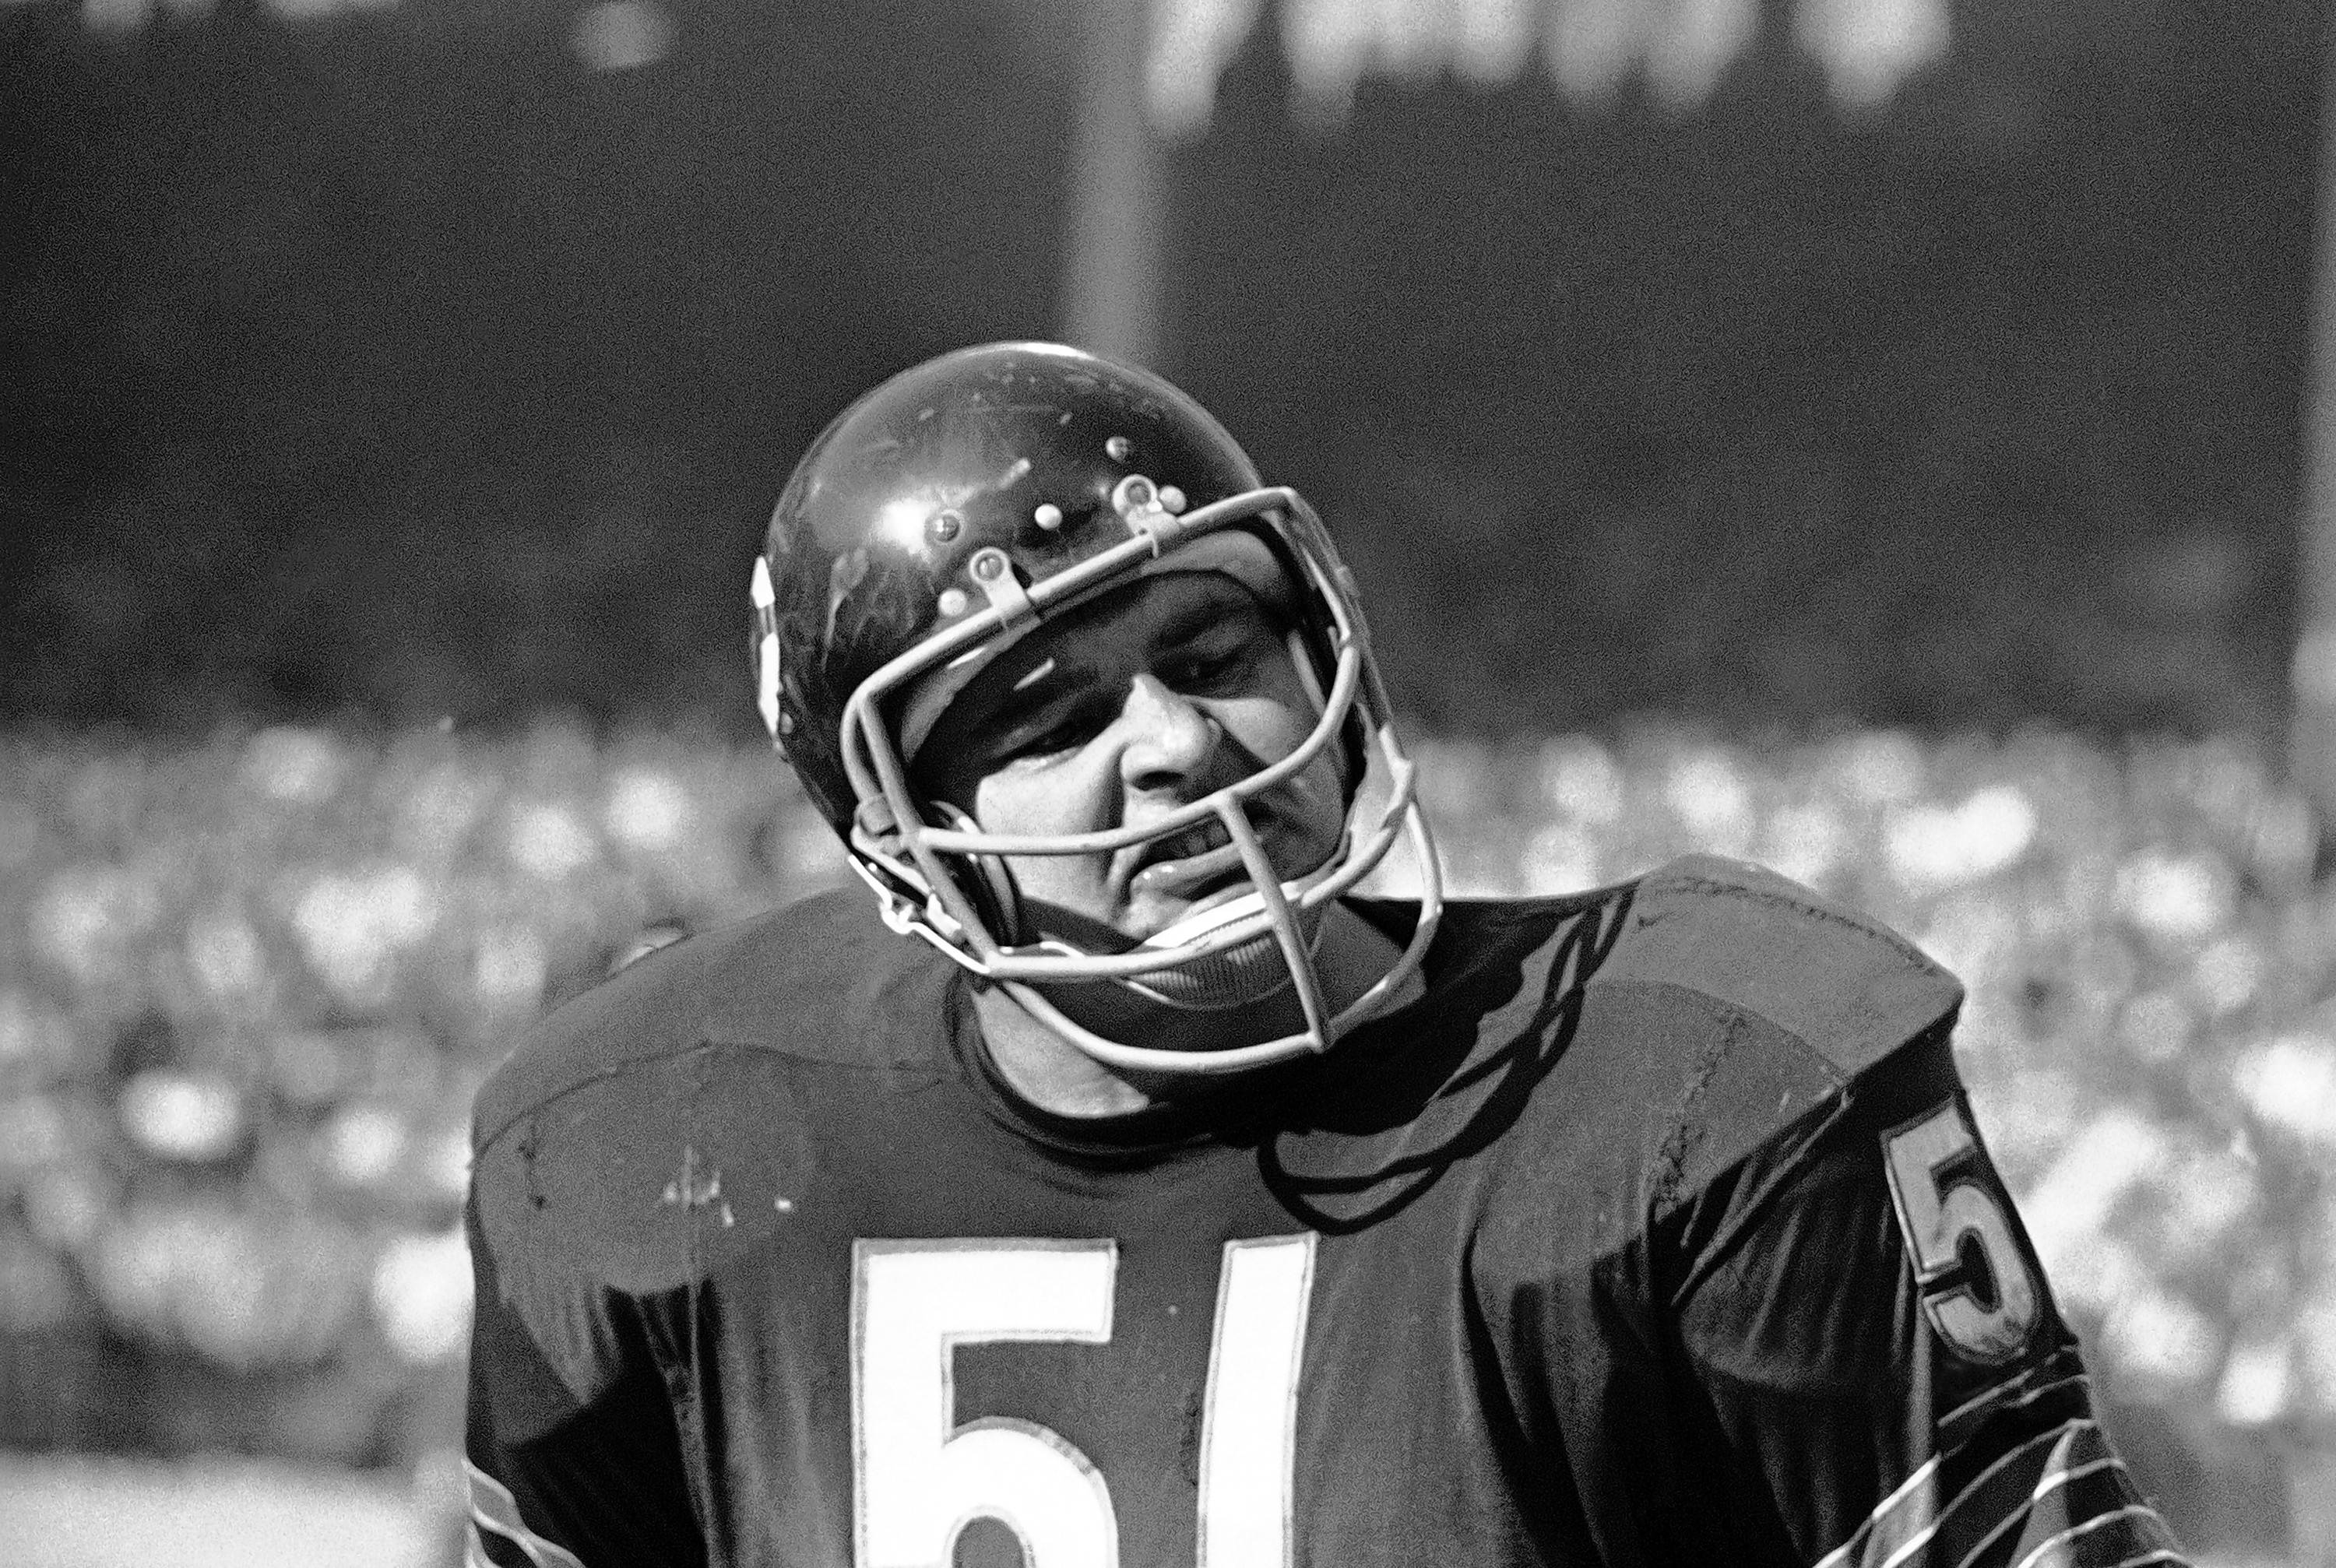 Chicago Bears' linebacker Dick Butkus, who was drafted out of the University of Illinois, will be honored with a bronze statue at it alma mater.